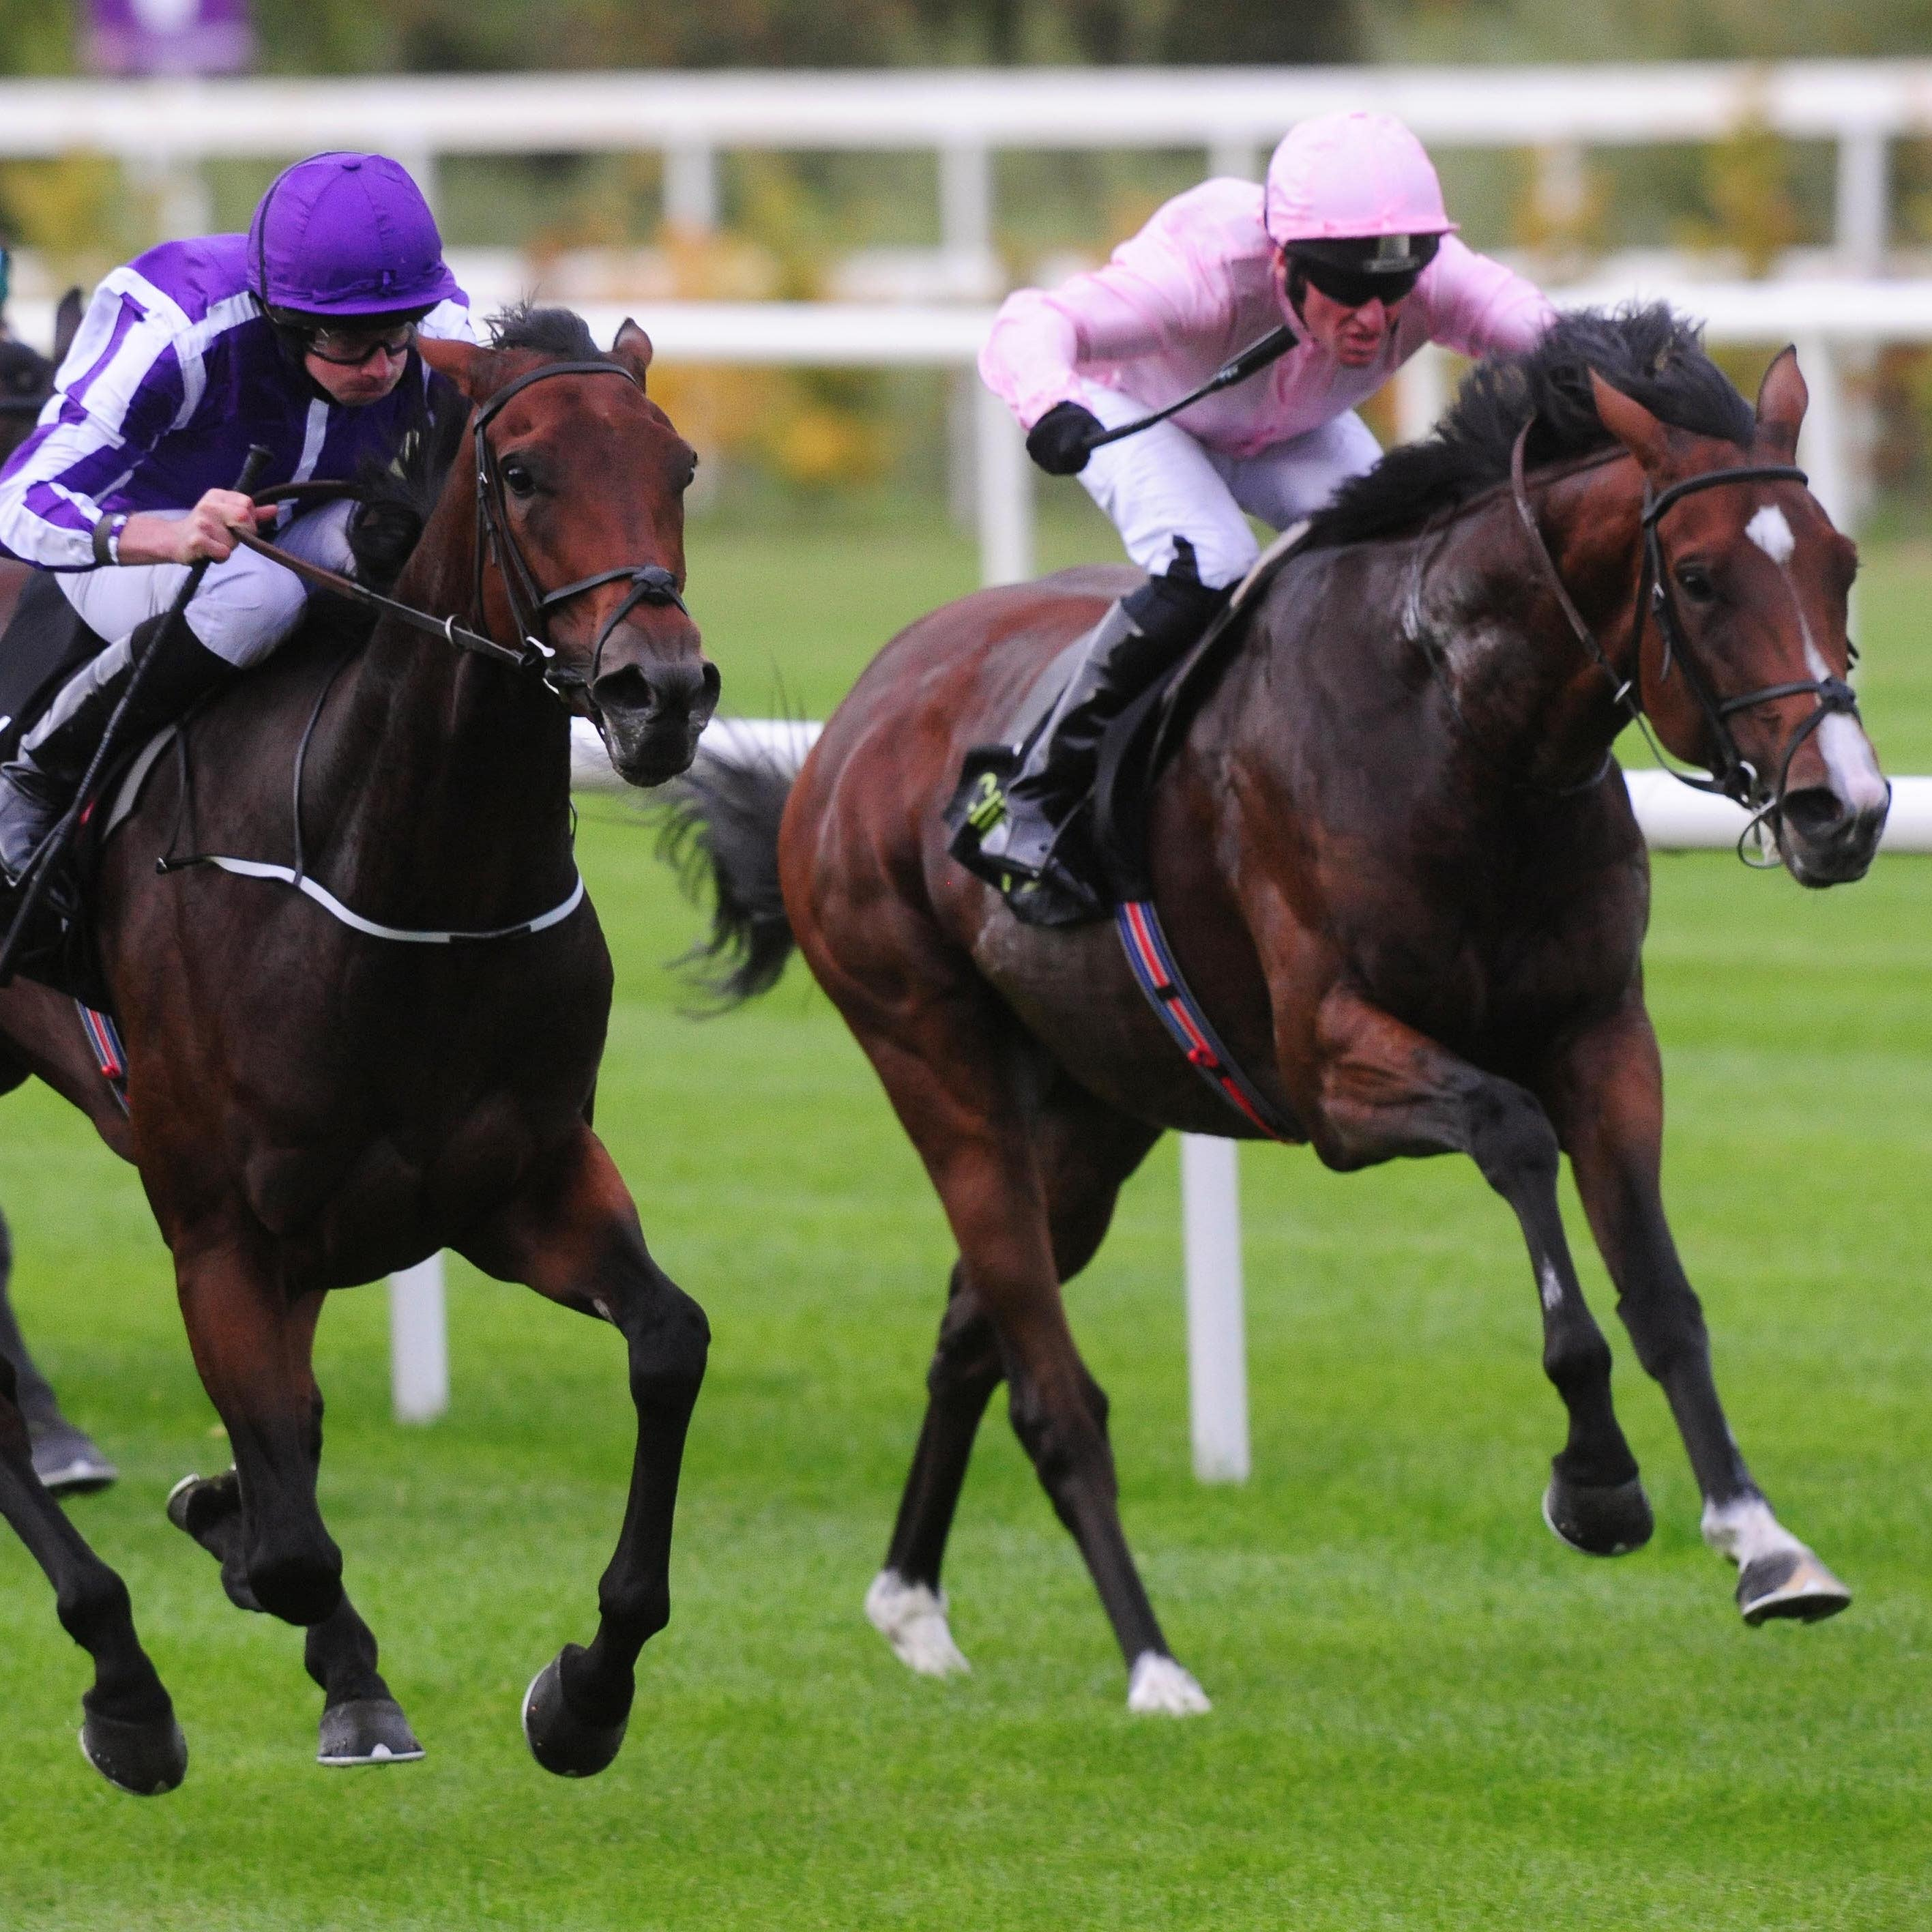 Kenya (right) finishes second to stablemate I Can Fly at Leopardstown